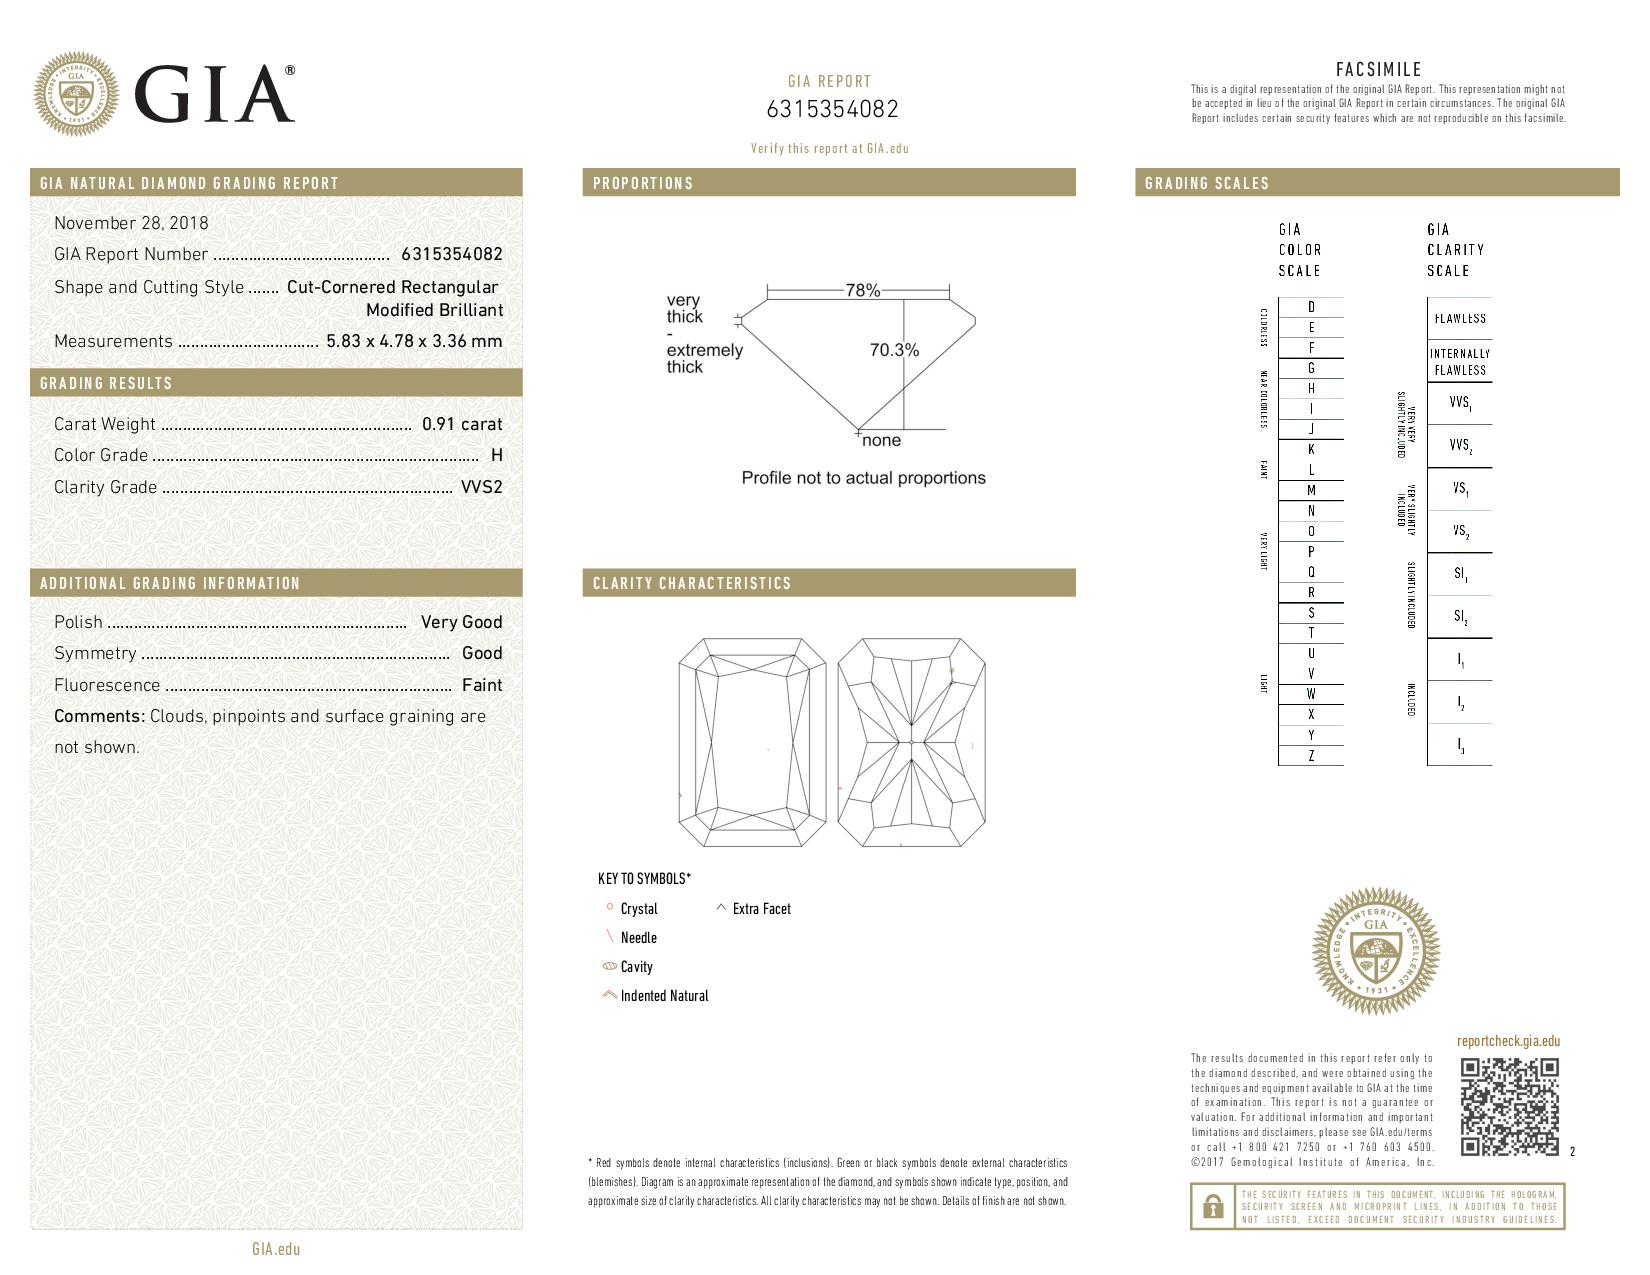 This is a 0.91 carat radiant shape, H color, VVS2 clarity natural diamond accompanied by a GIA grading report.